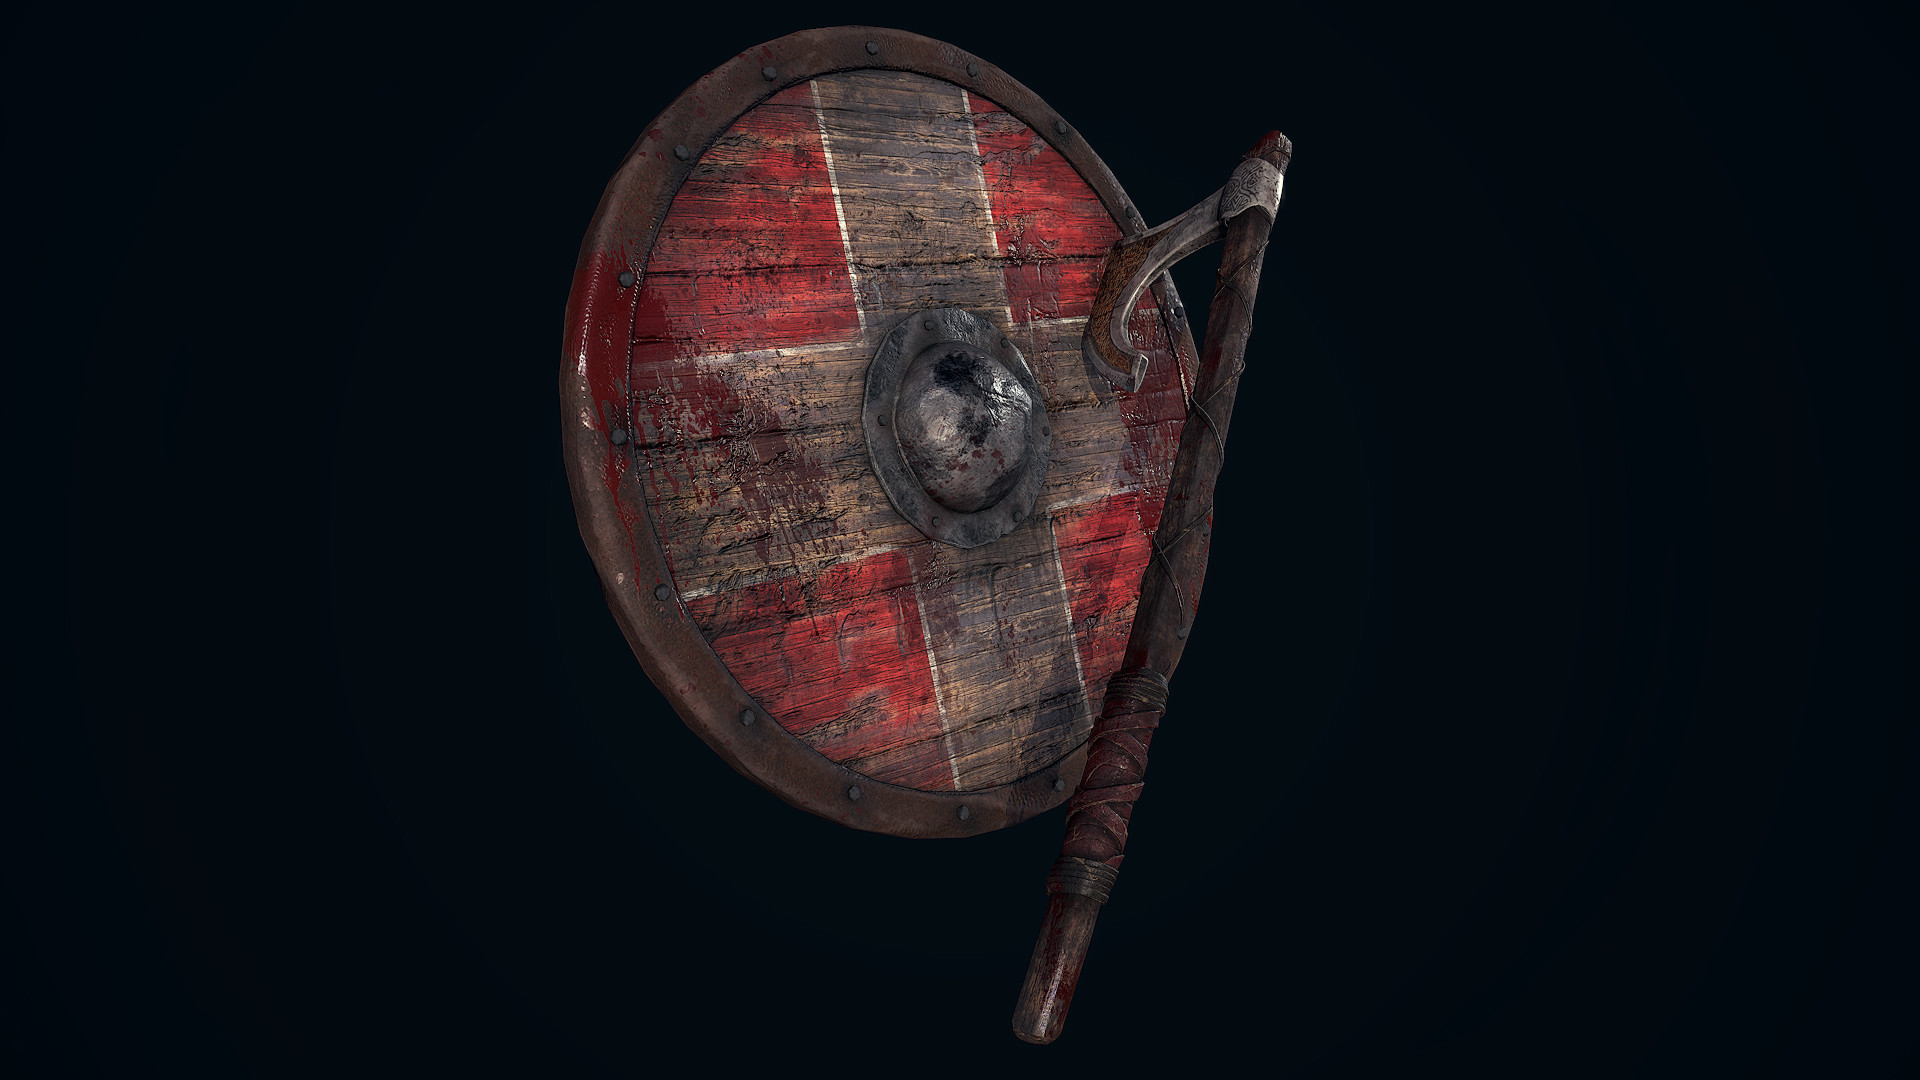 Andrew finch viking shield axe 0004 layer 1